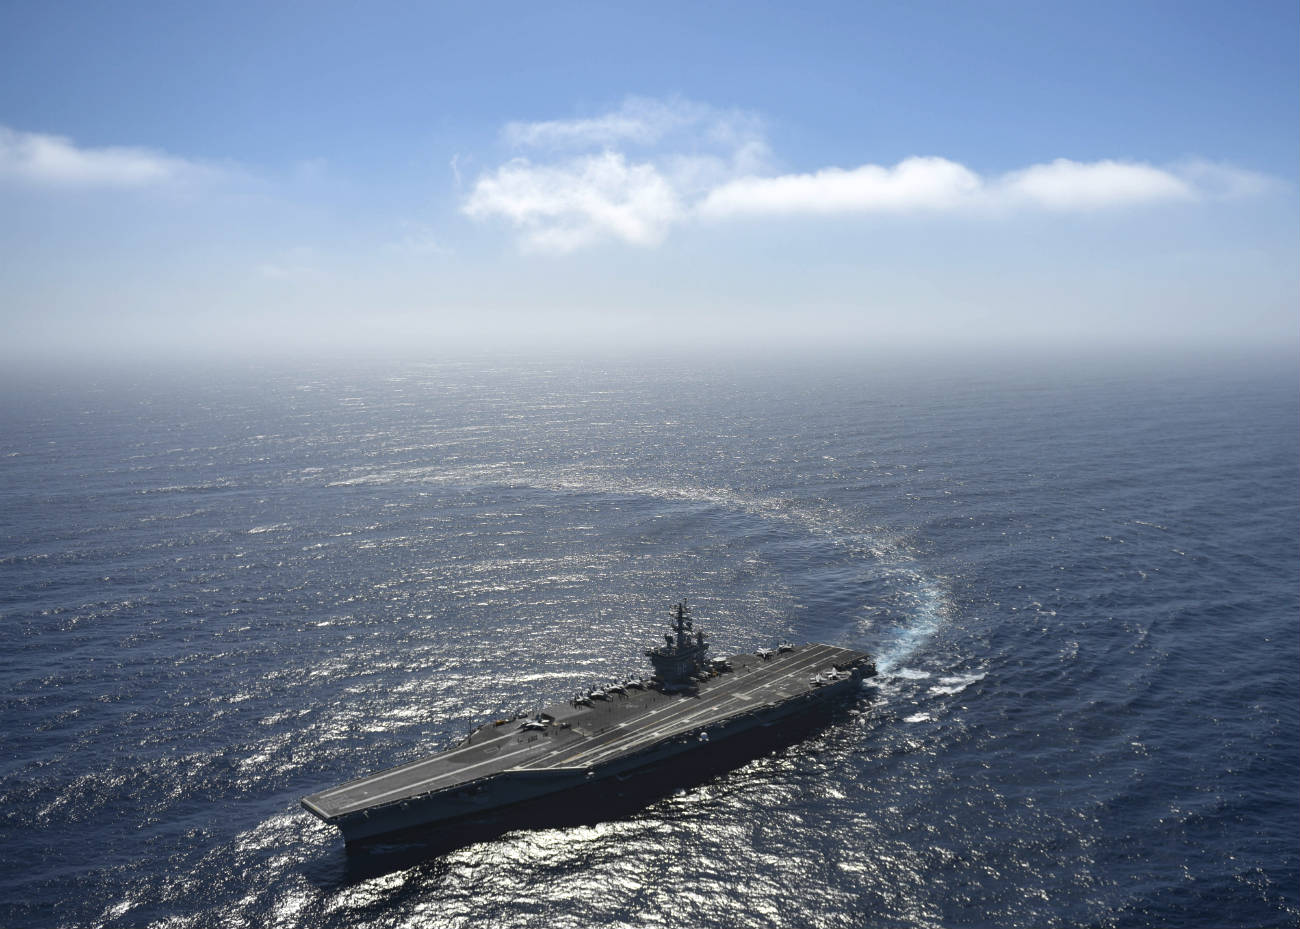 Aircraft Carrier Maneuverability